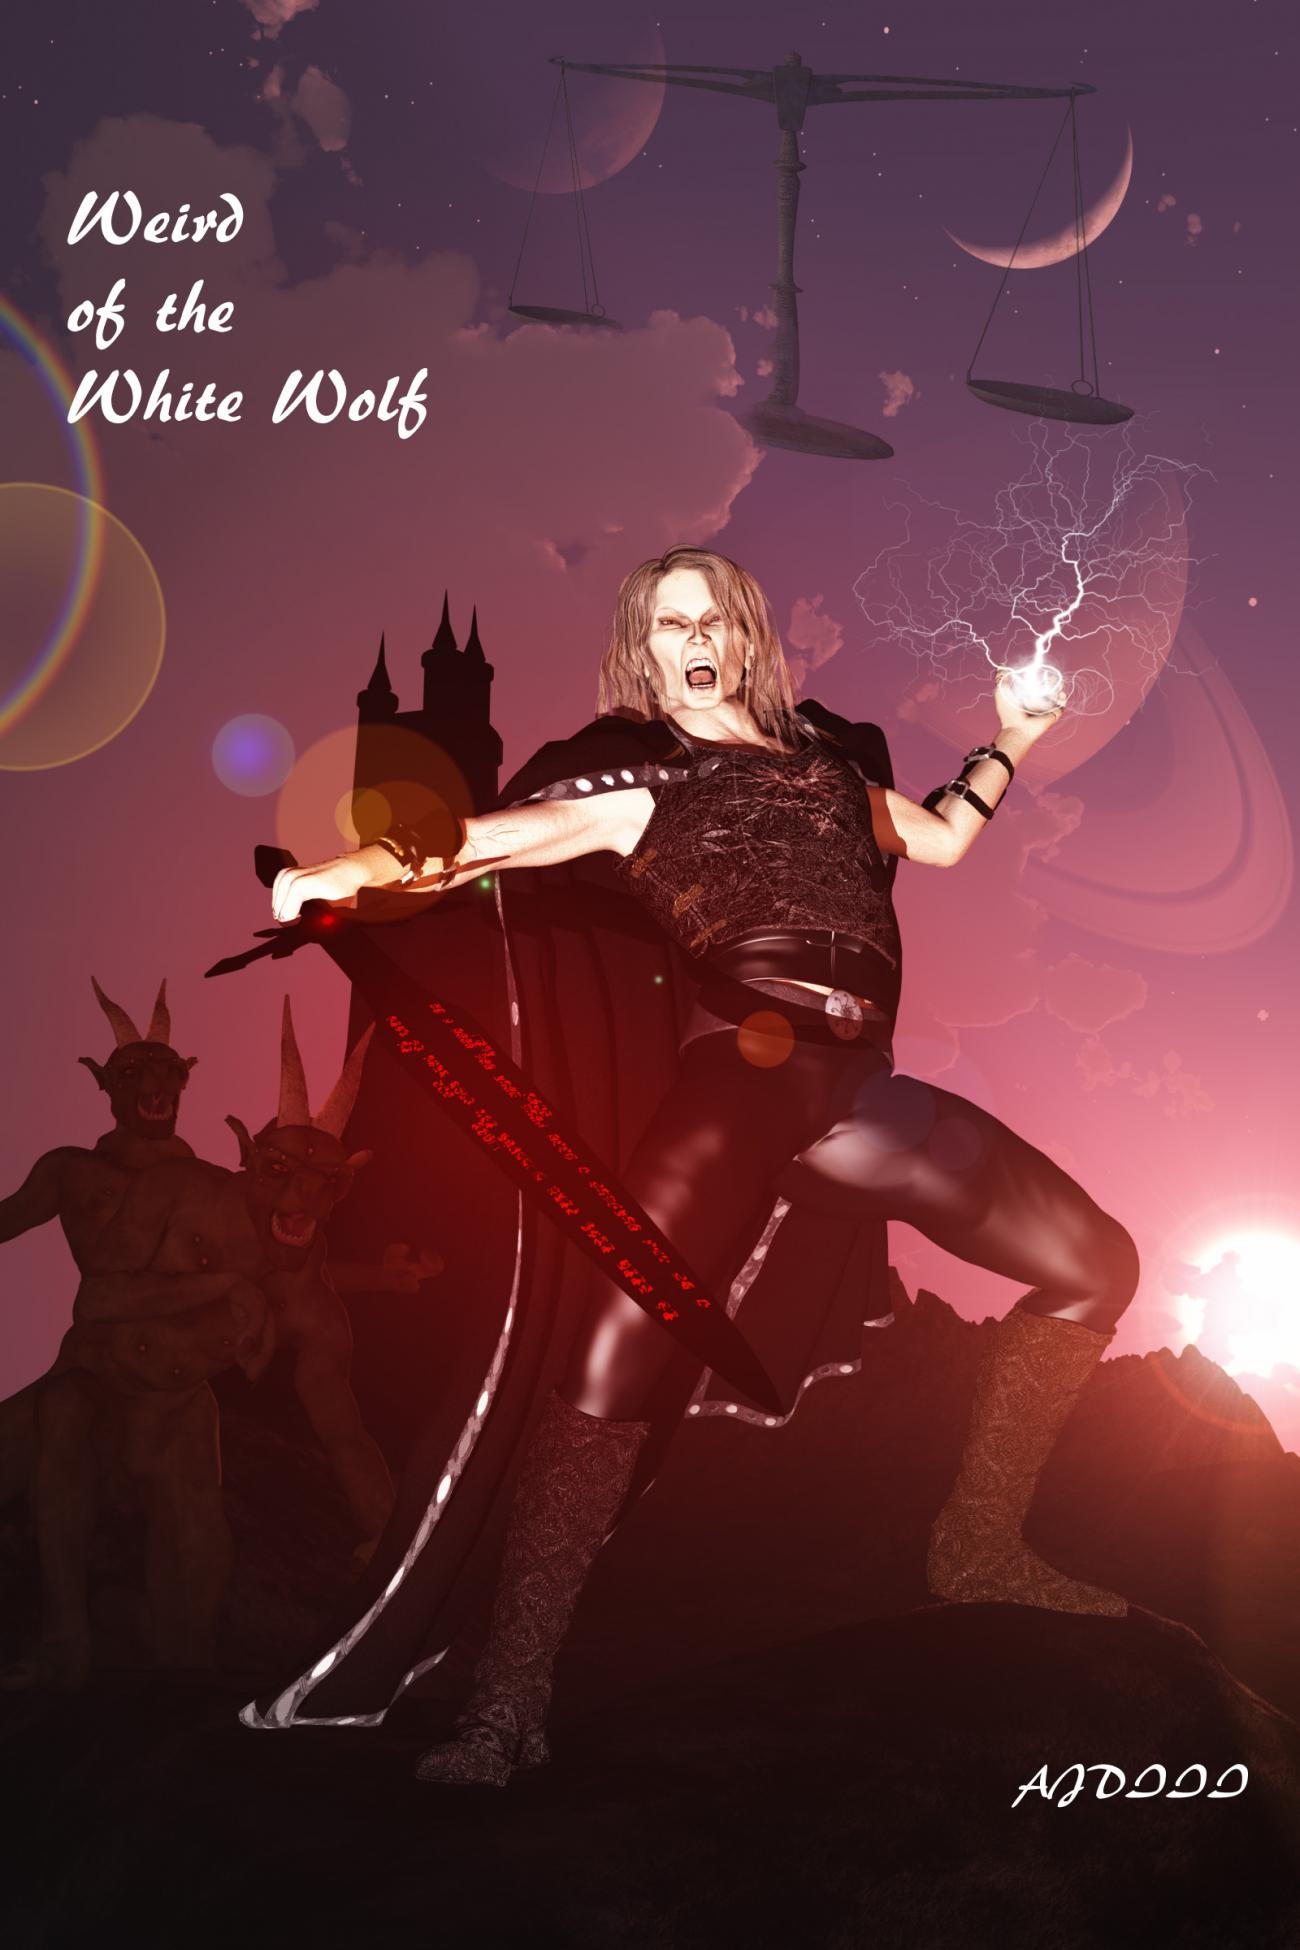 Elric:Weird of the White Wolf: For Rayvn by adorety